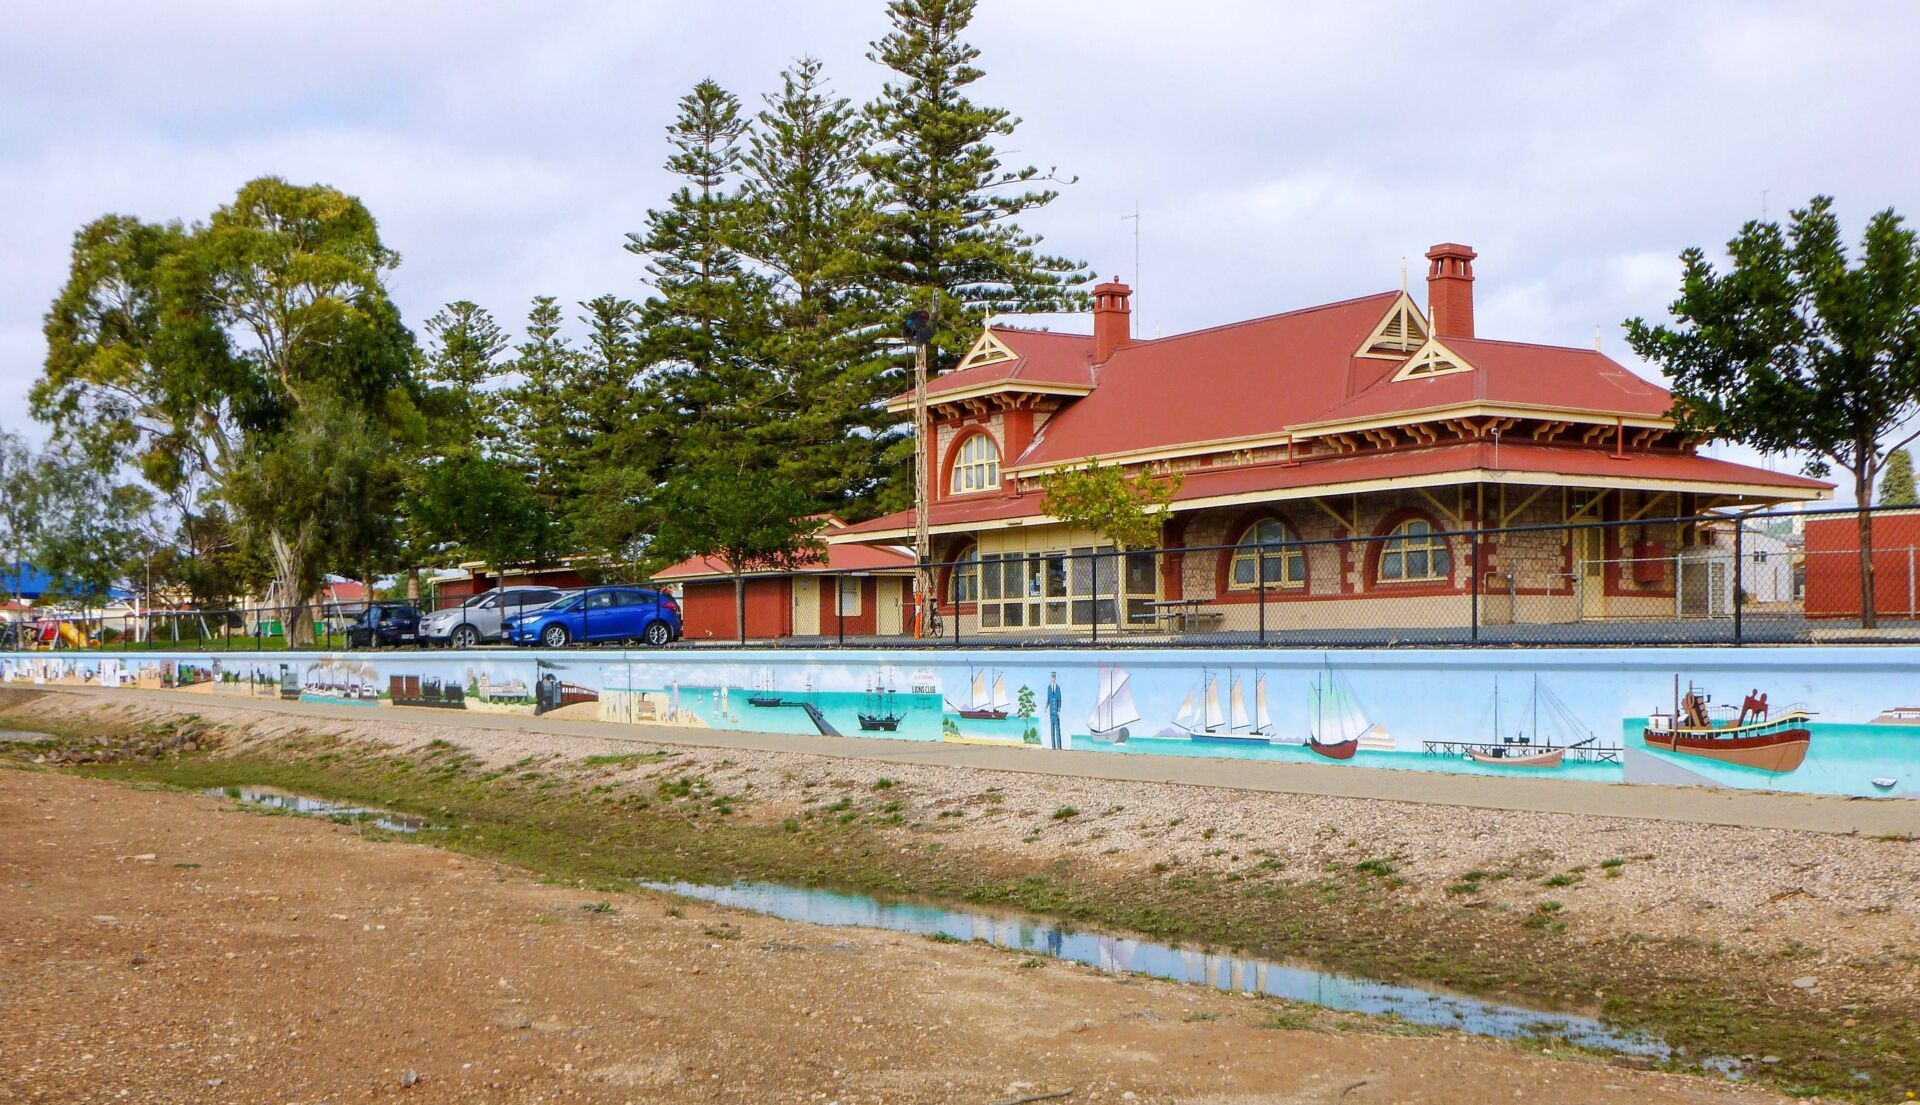 The former Wallaroo station is well preserved and part of the community [2021]